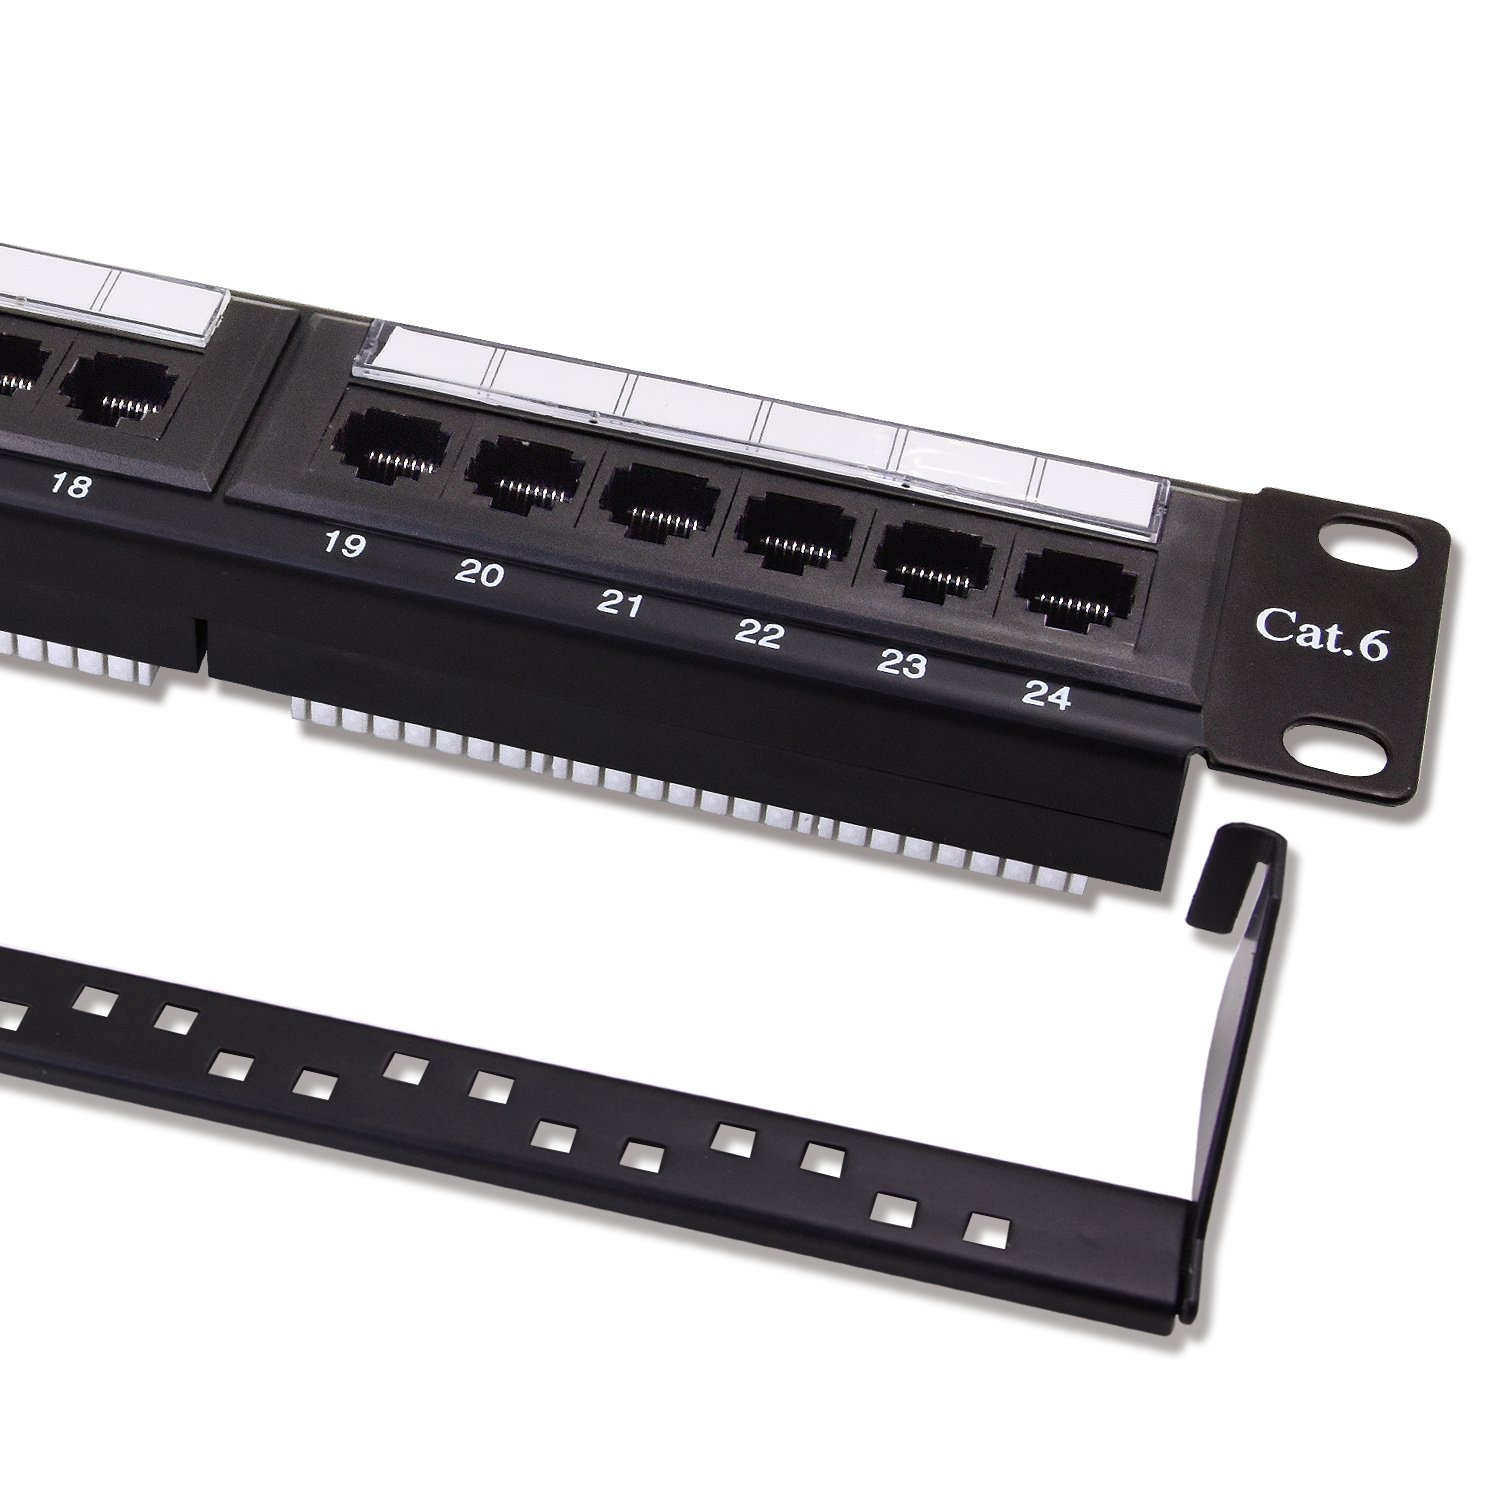 Patch Panel Cat6 24 Port Rj45 Keystone Network For Of Rack System On Wiring House Ethernet Unshielded Wallmount Or Rackmount 1u With Rear Cable Management Bracket Computers